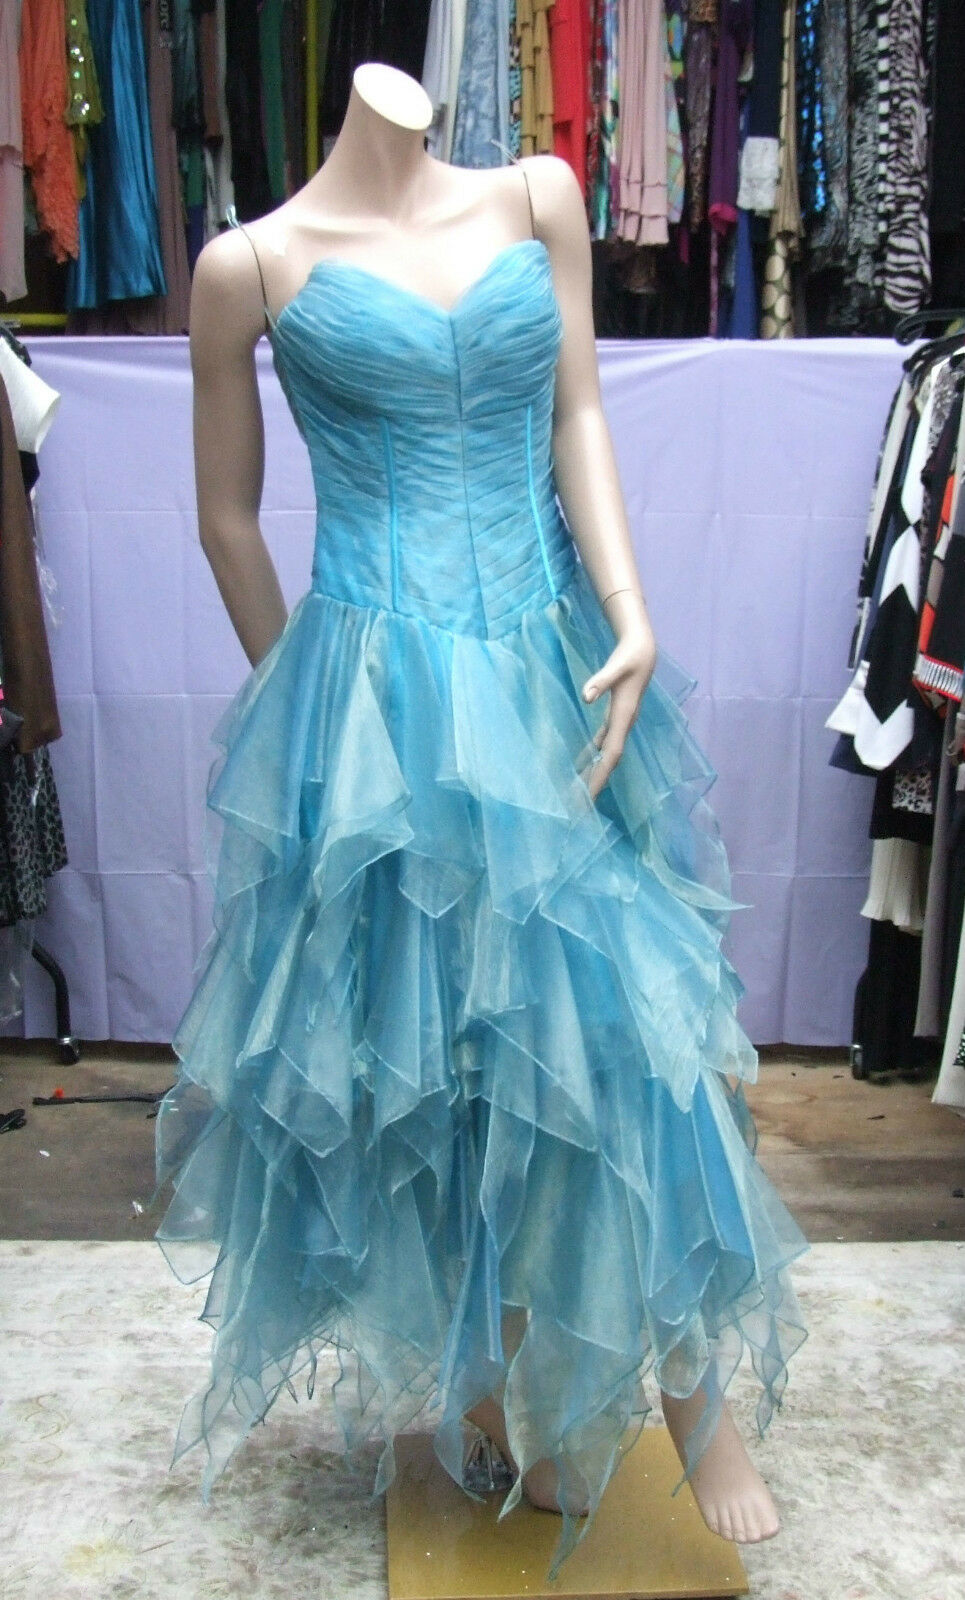 Exquisite Dress BNWT Frozen Ice Princess Blau Moon Romantica Evening Gown UK 10